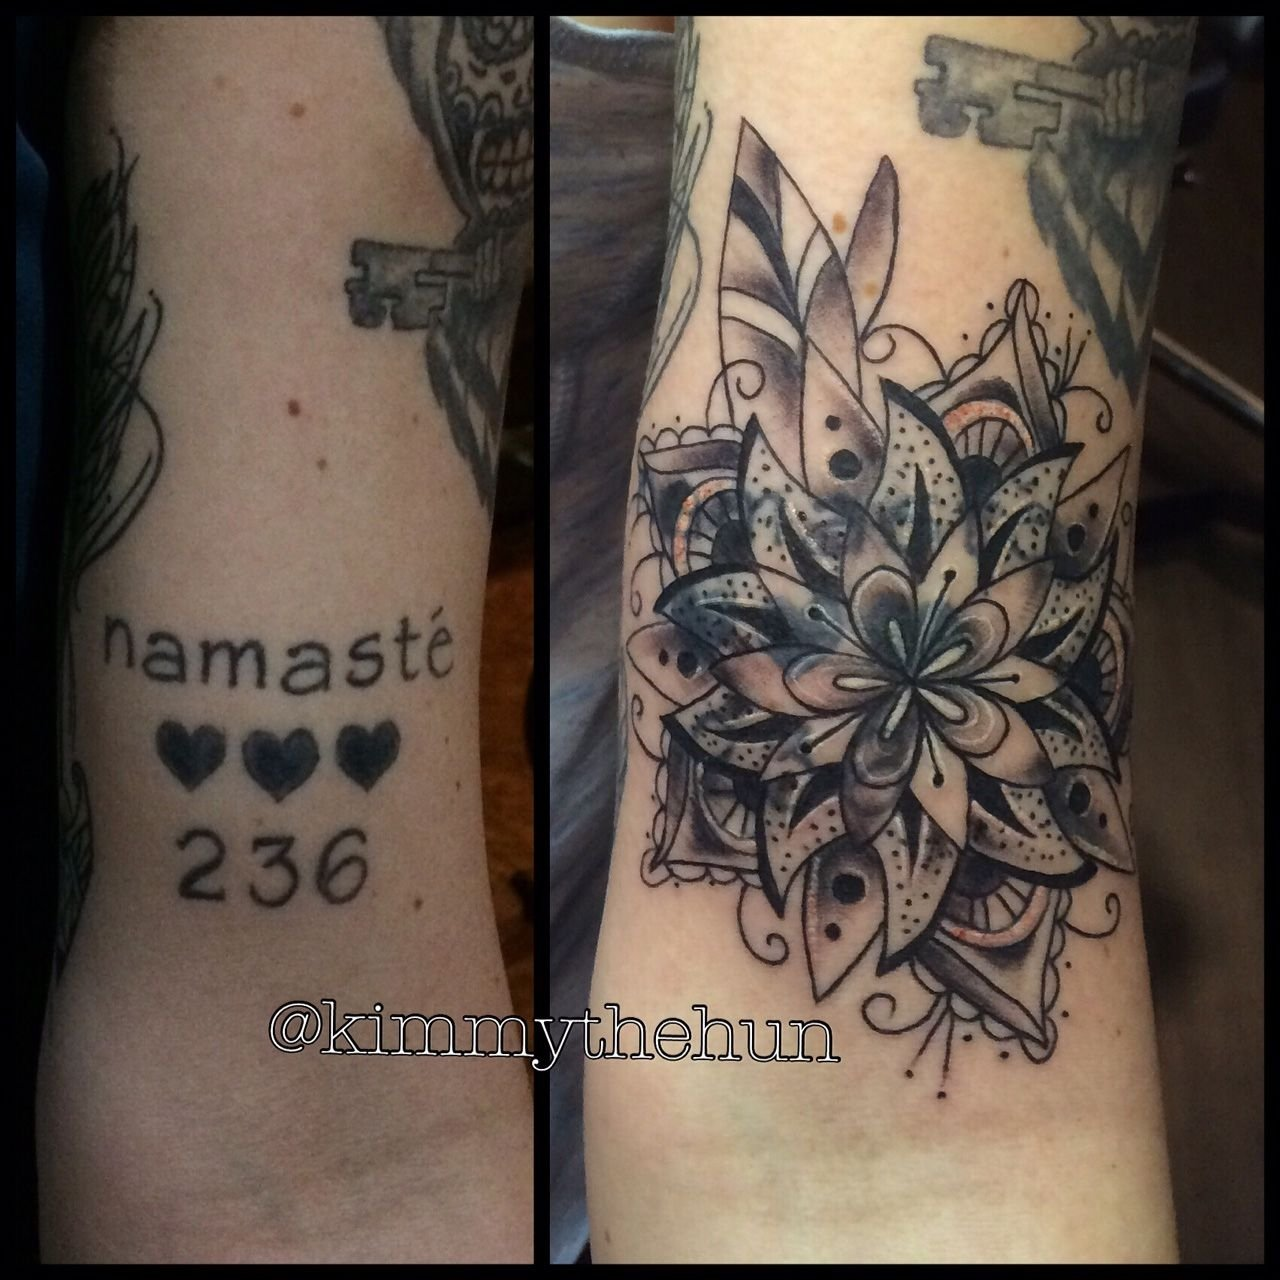 10 Stylish Heart Tattoo Cover Up Ideas tattooskim taylor cover ups and re worked tattoos heart 2020